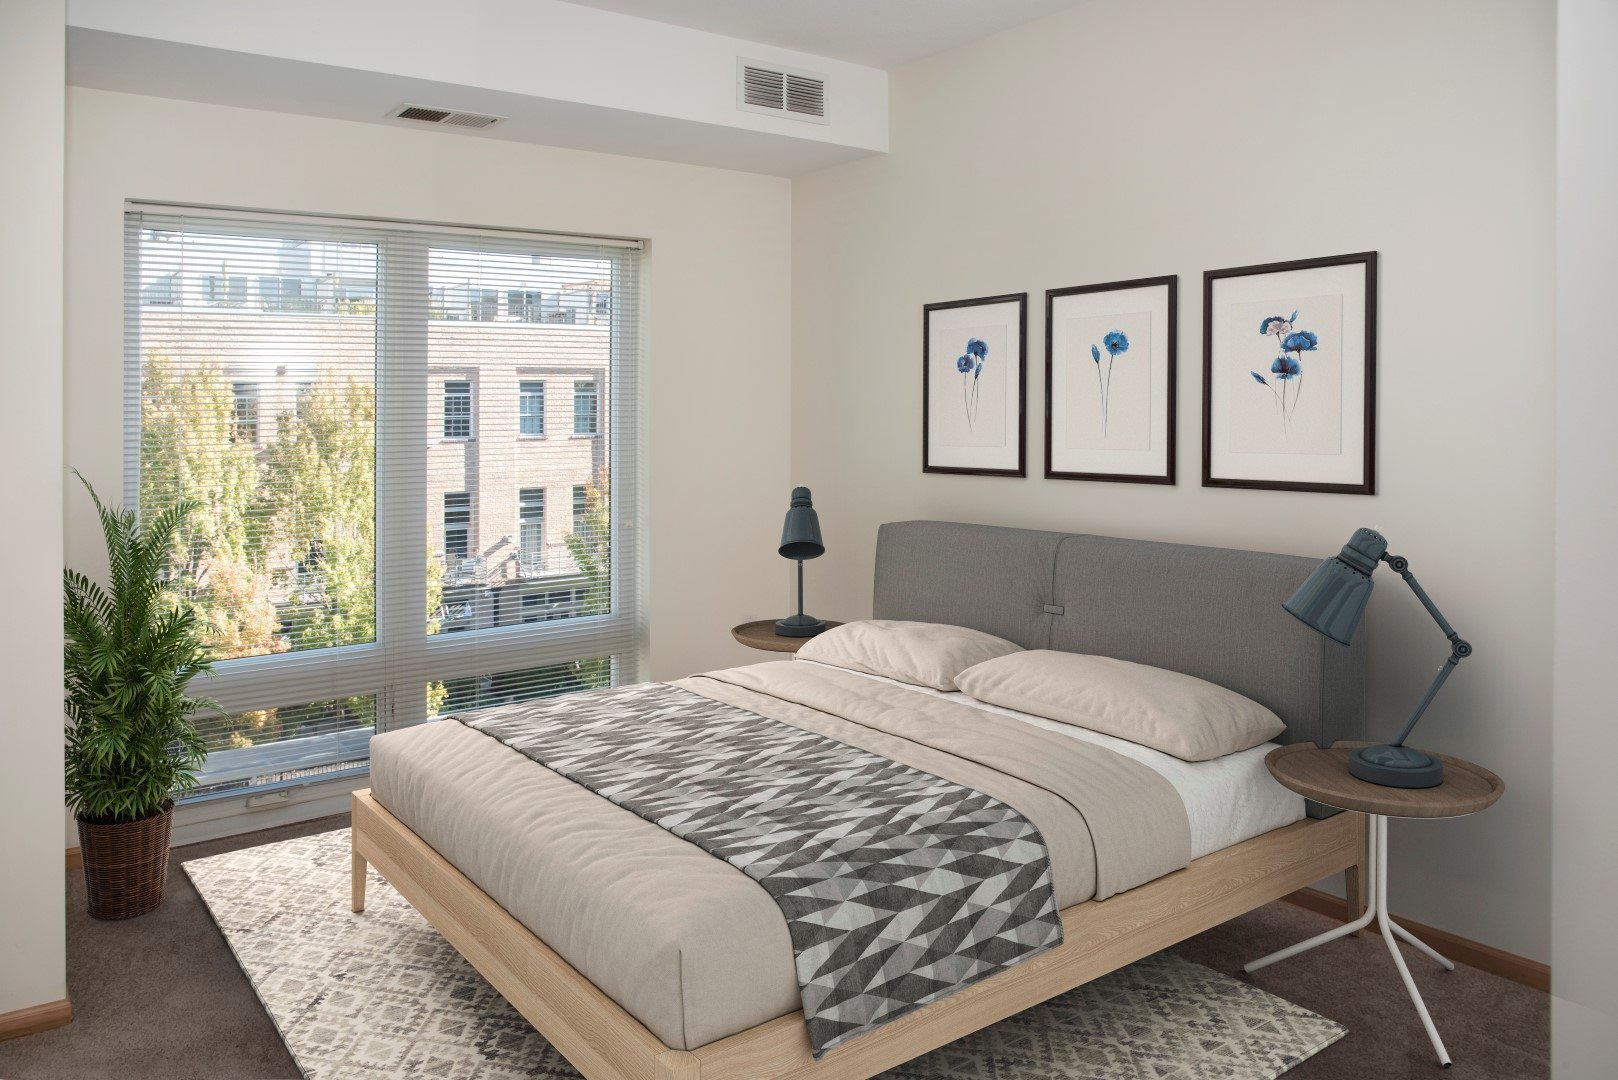 Third North one bedroom apartments